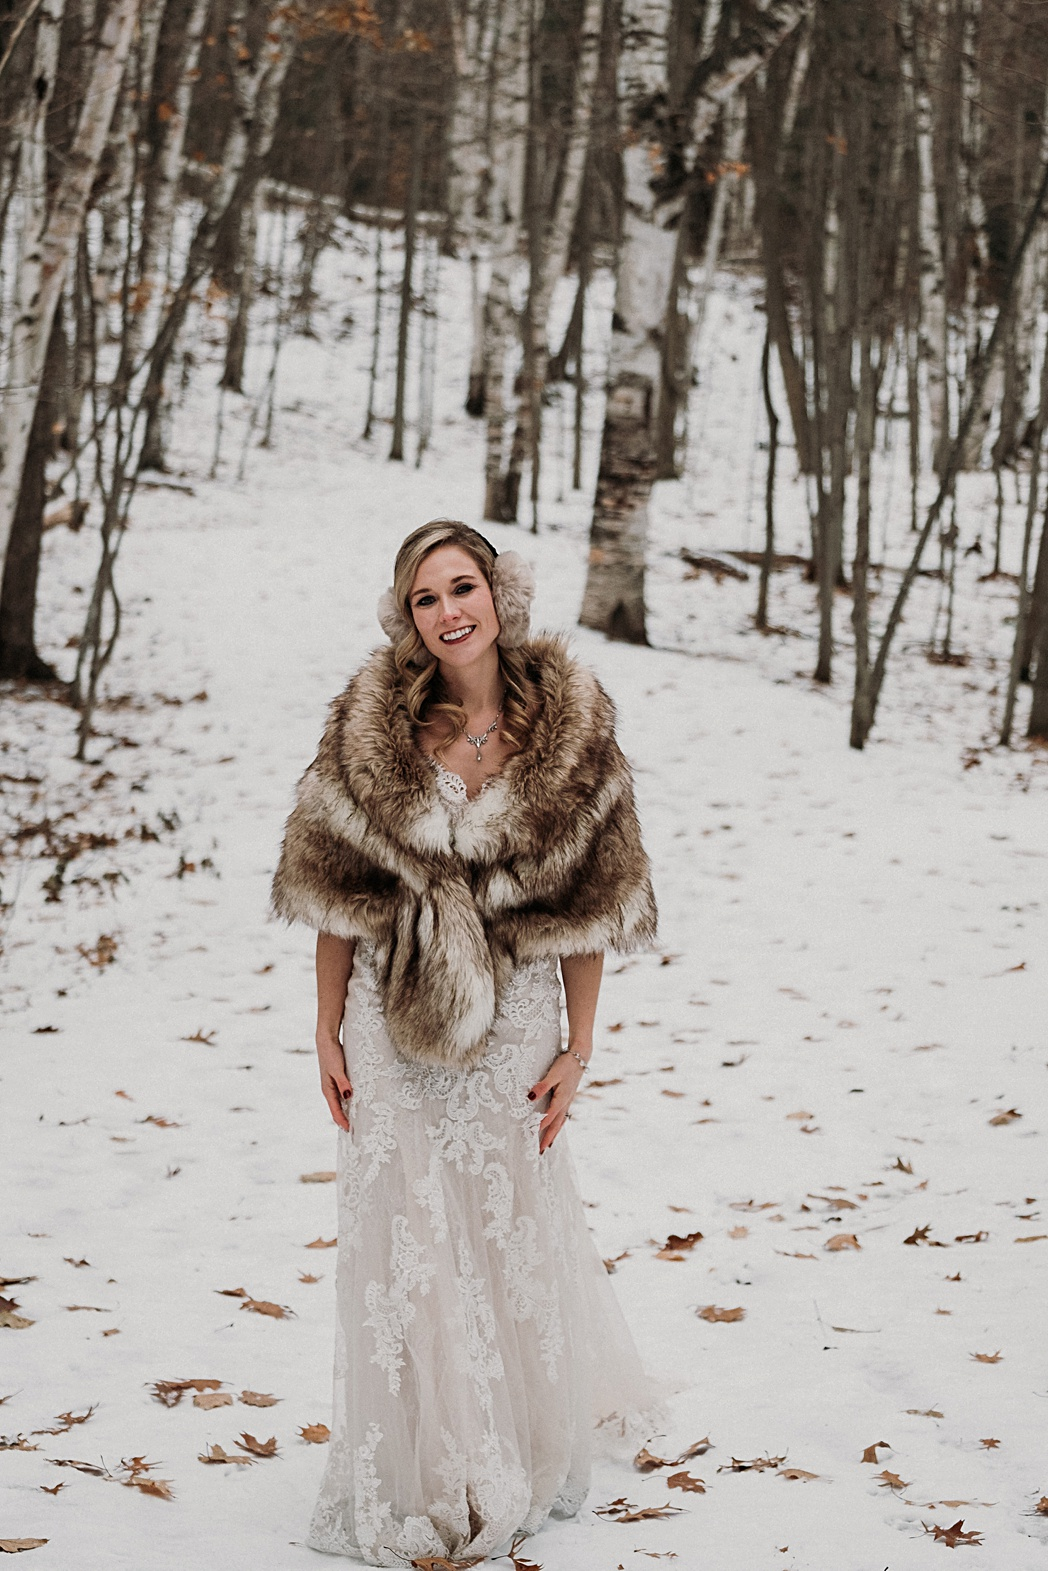 Traverse City Winter Bridal Photos